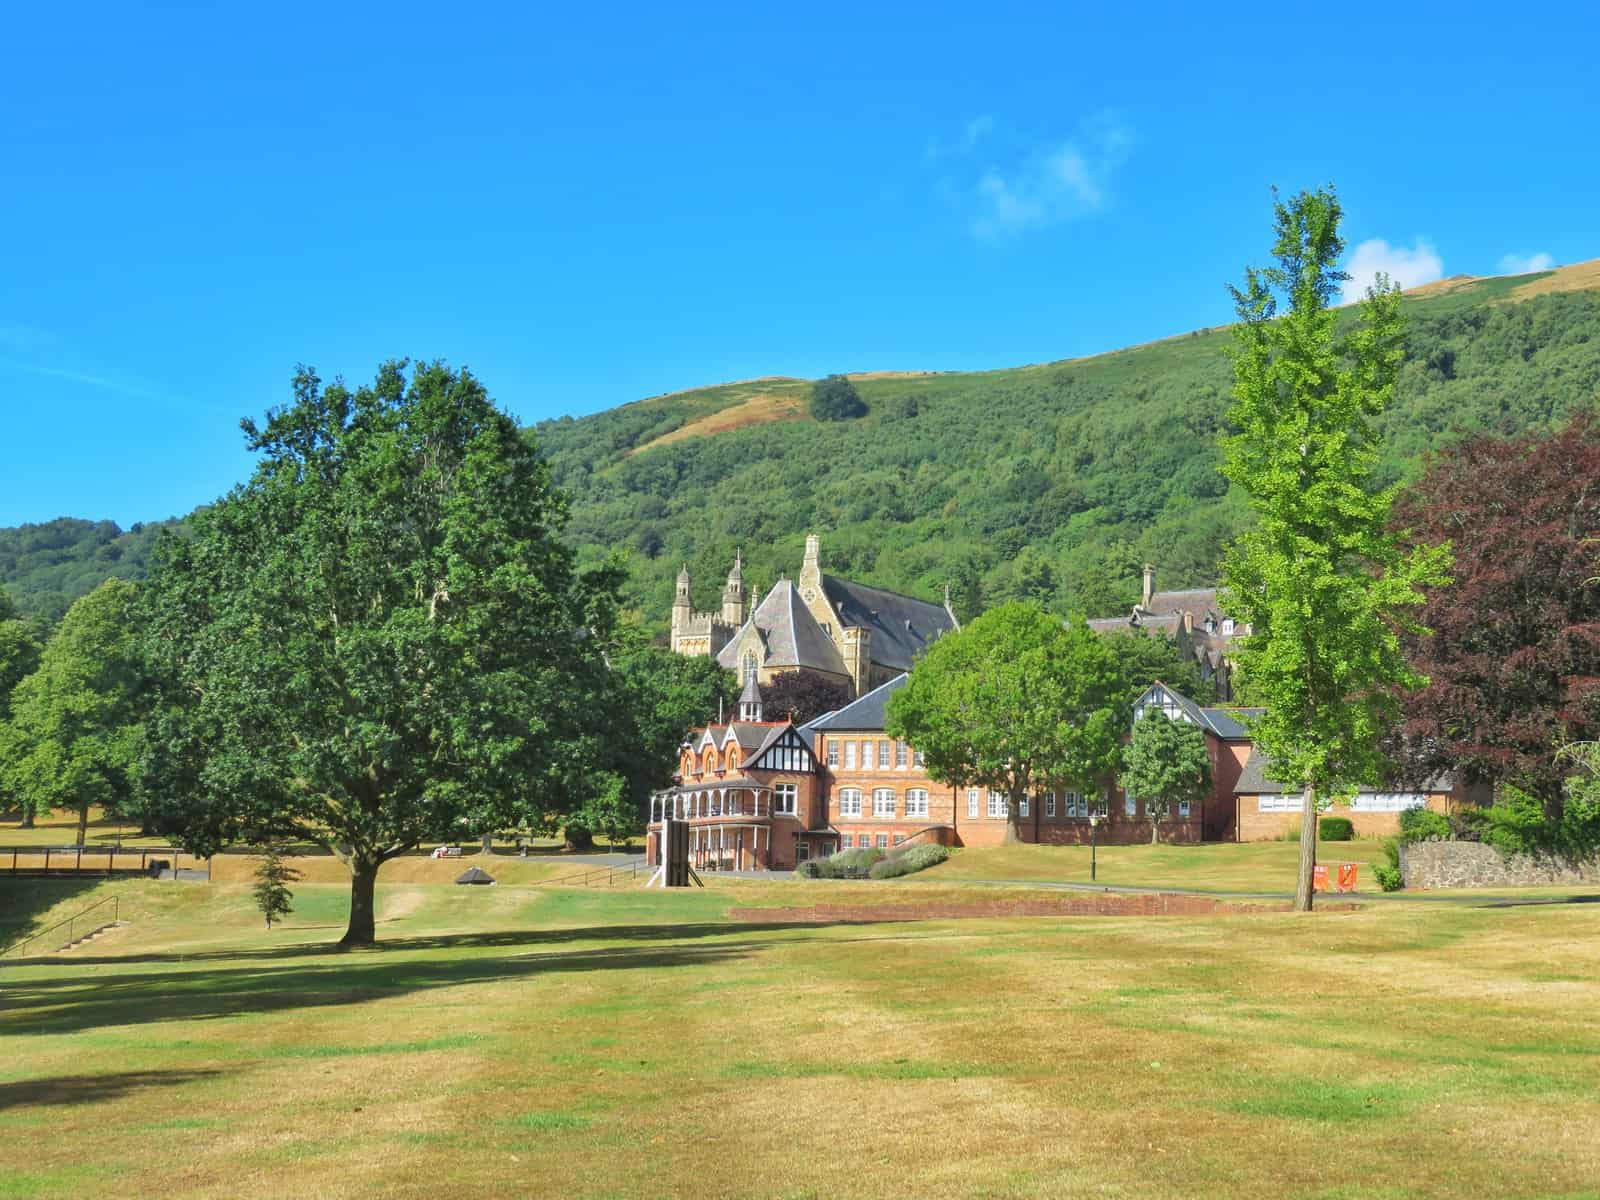 Super Camps Malvern College buildings set on lawn at foot of green hills